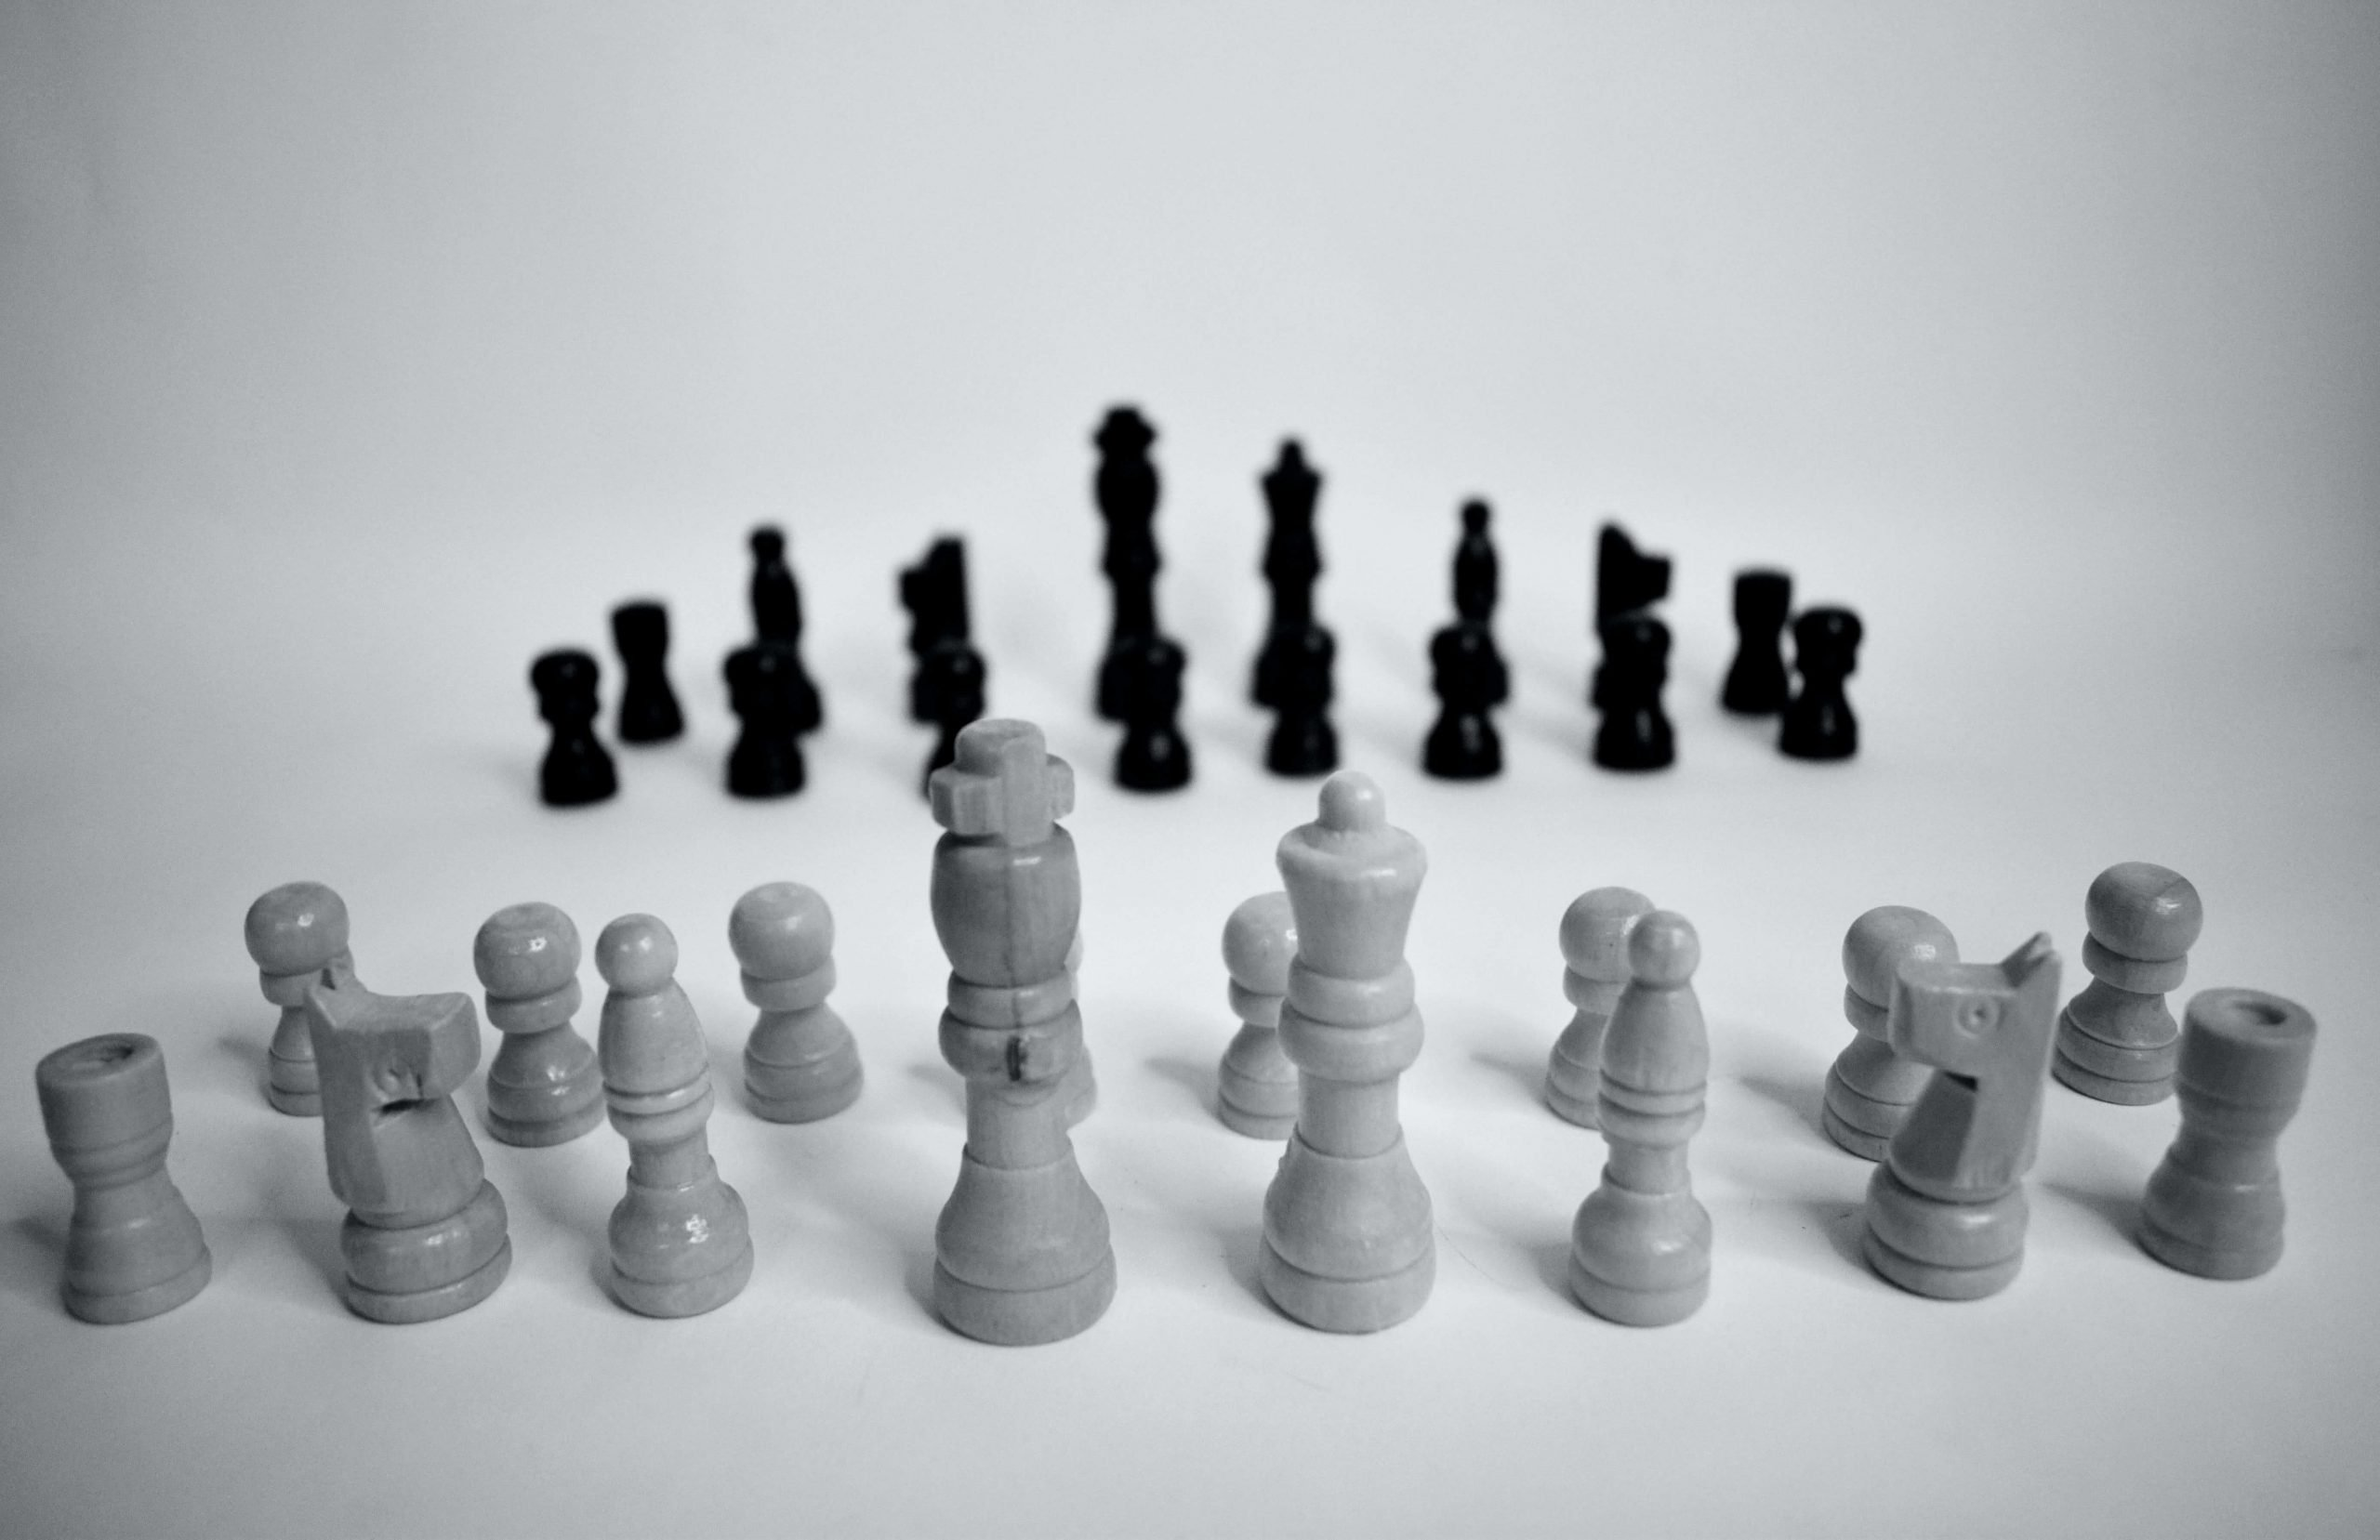 chess set ready to compete